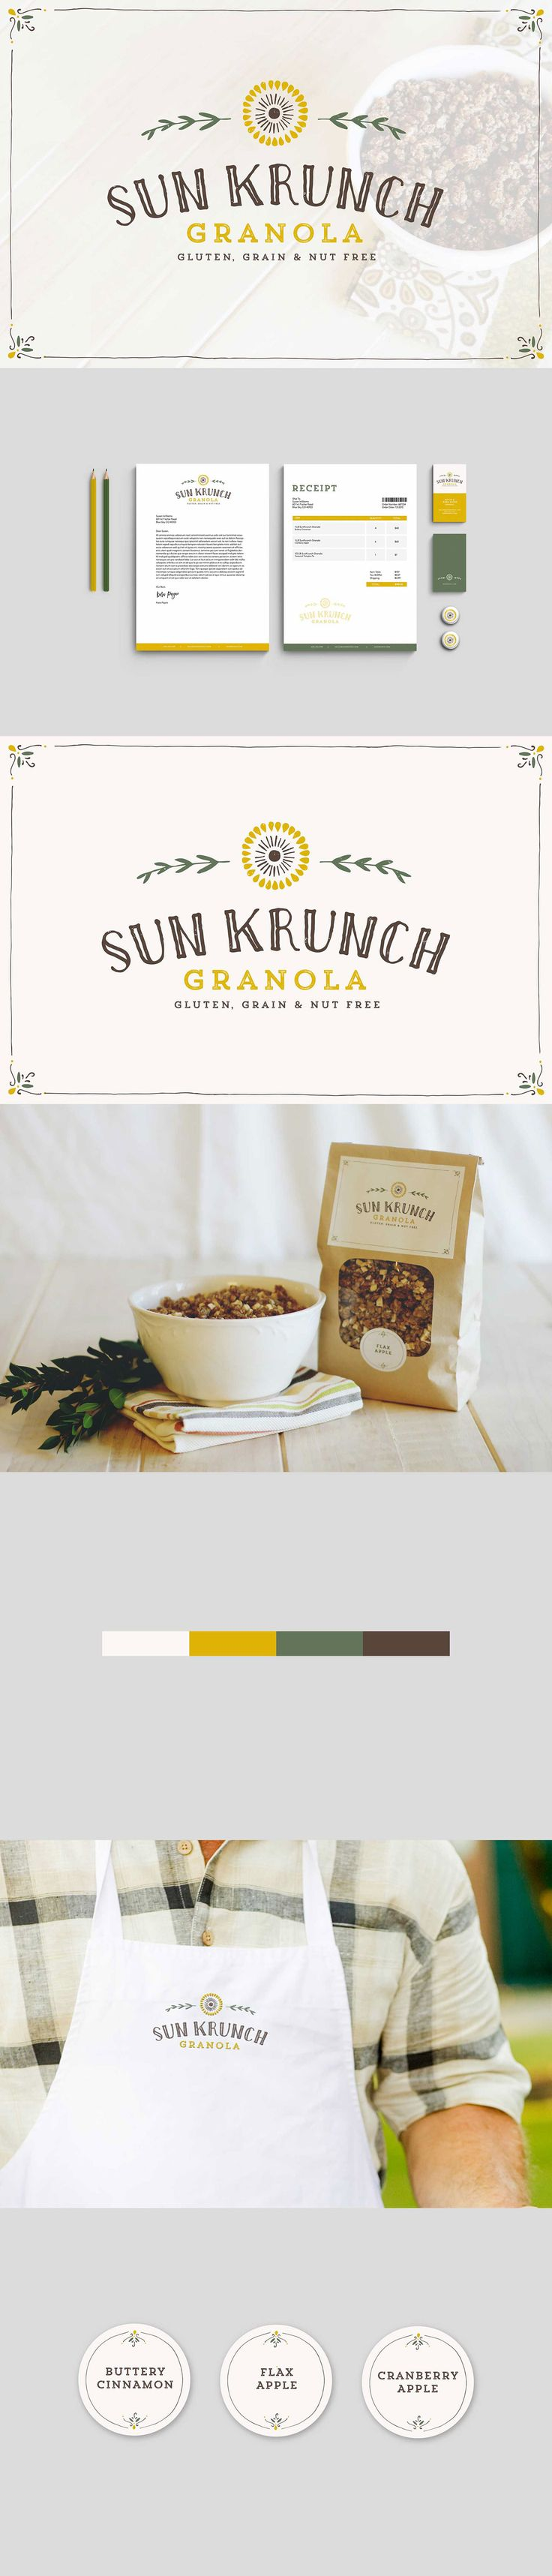 Sun Krunch Granola branding by Kristen Williams on Behance \\ Gluten, Grain and Nut Free, Paleo Granola